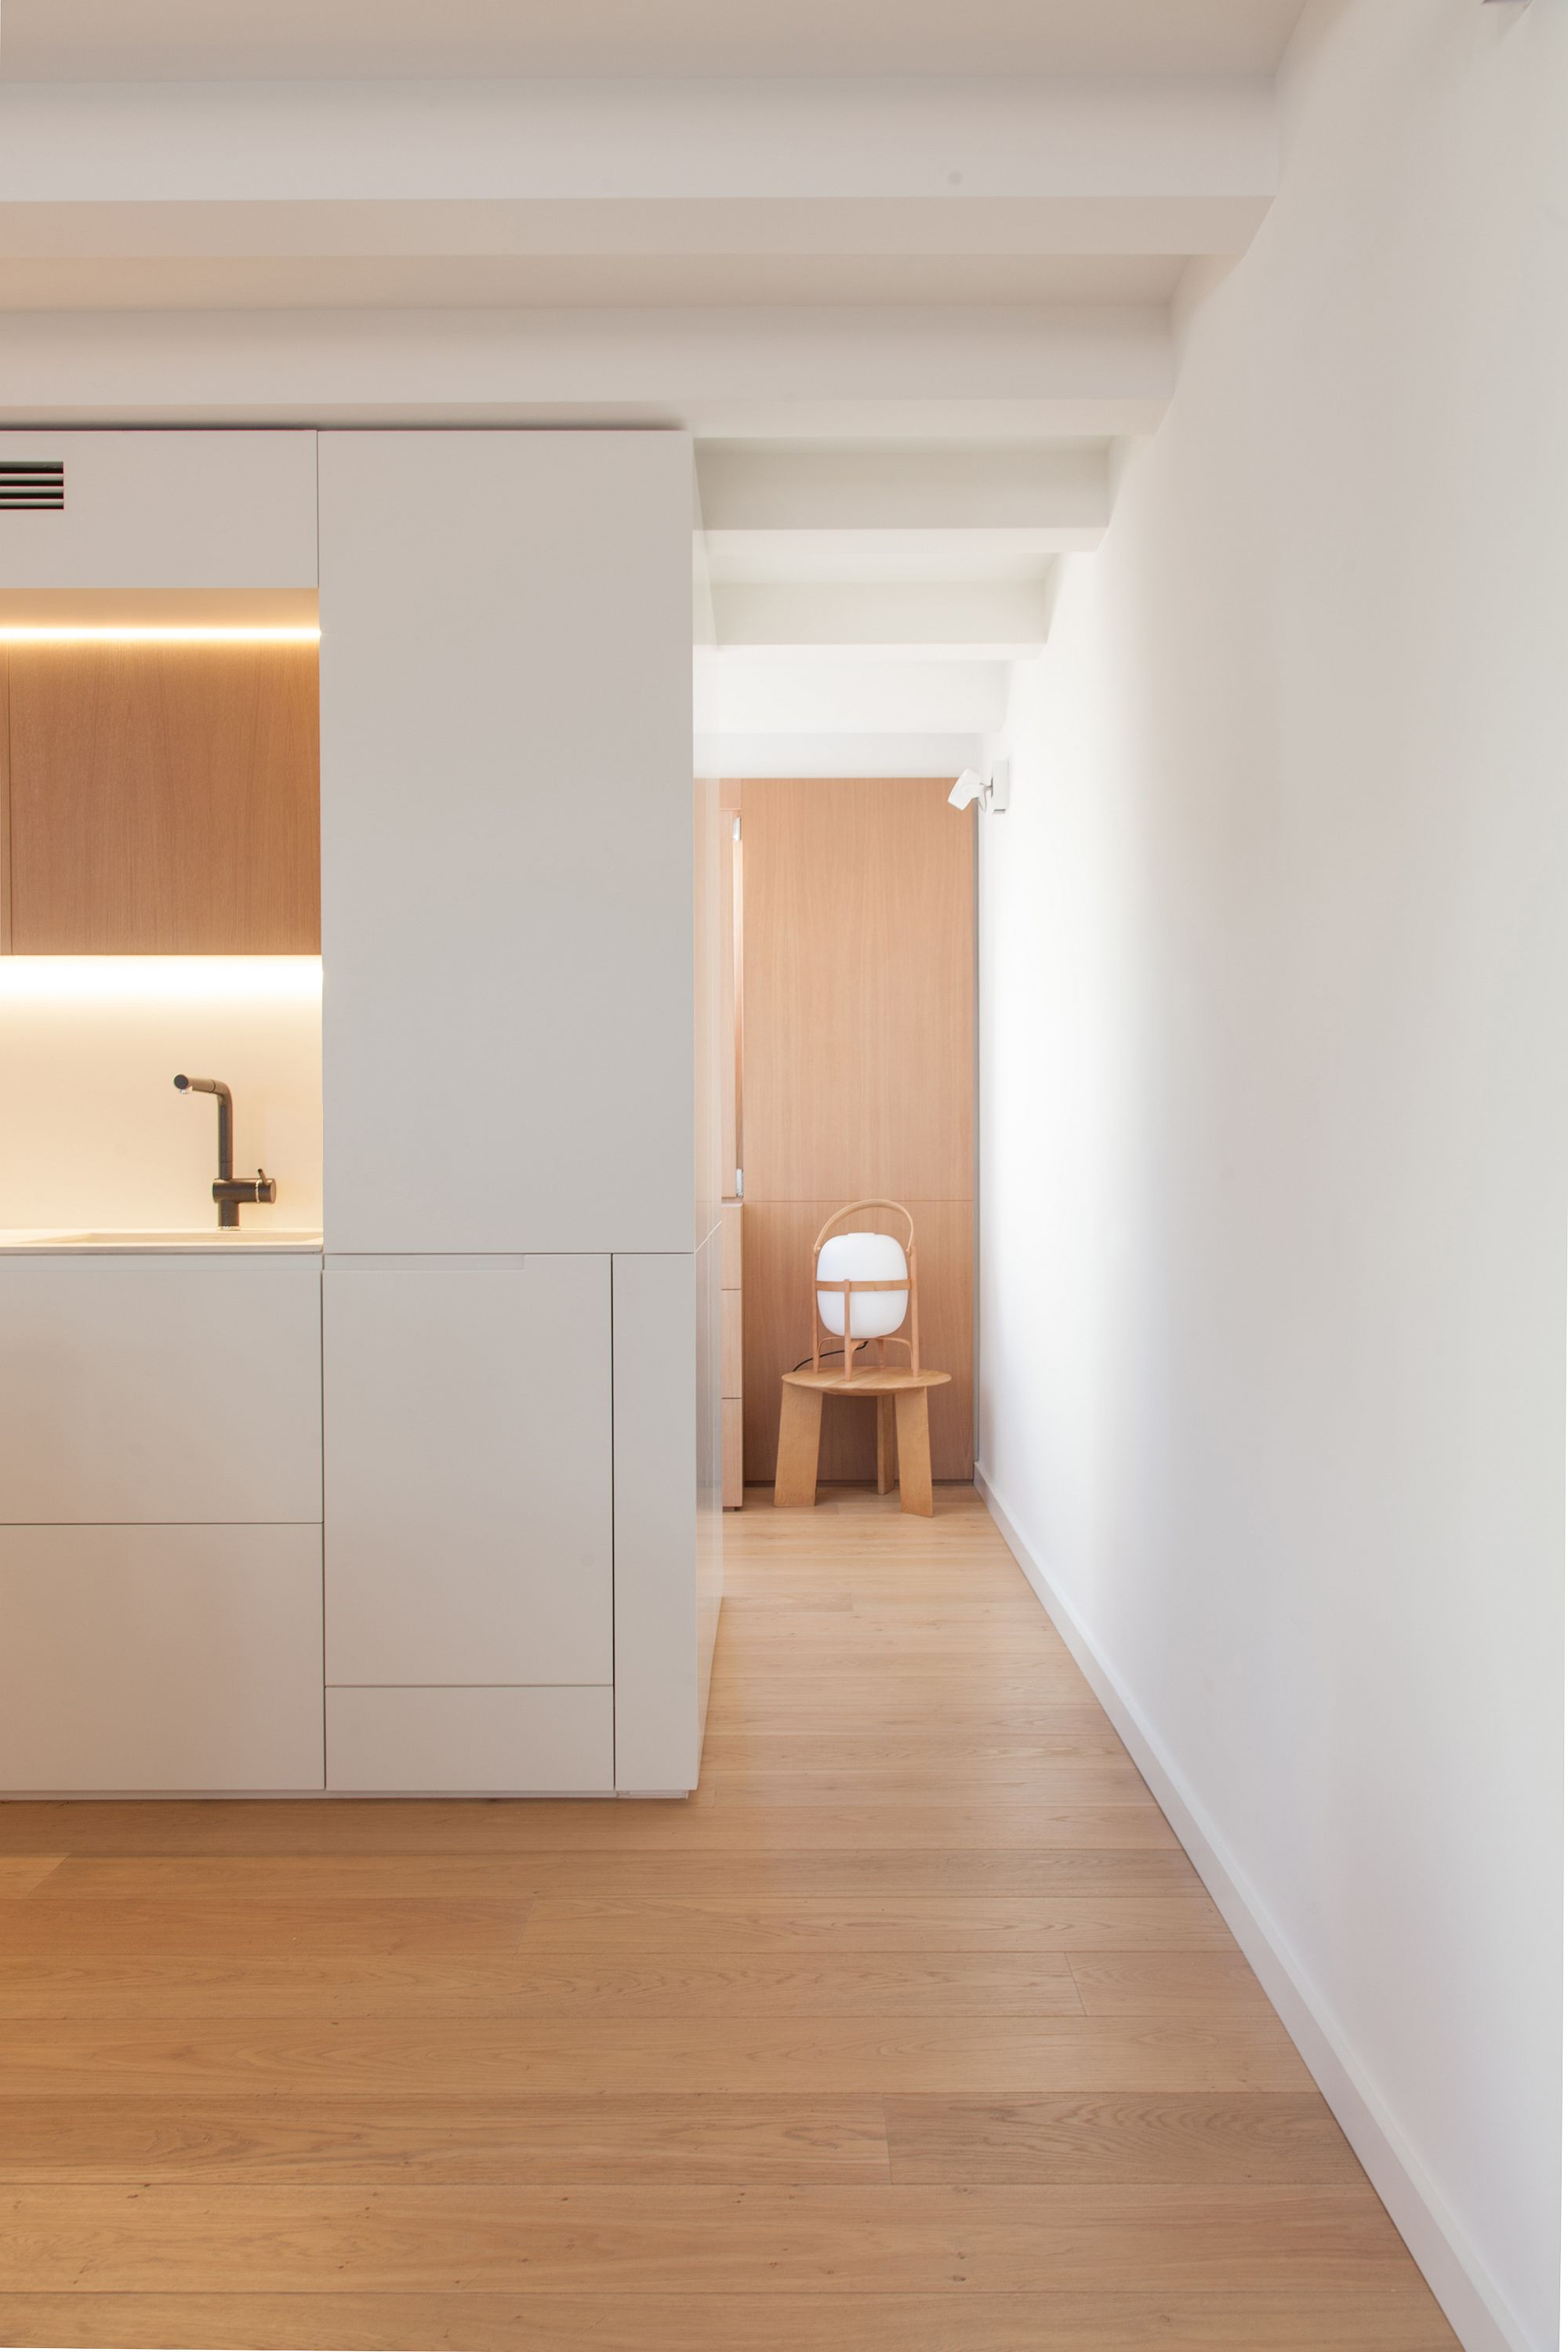 Hidden-behind-the-custom-units-are-cabinets-that-serve-different-functions